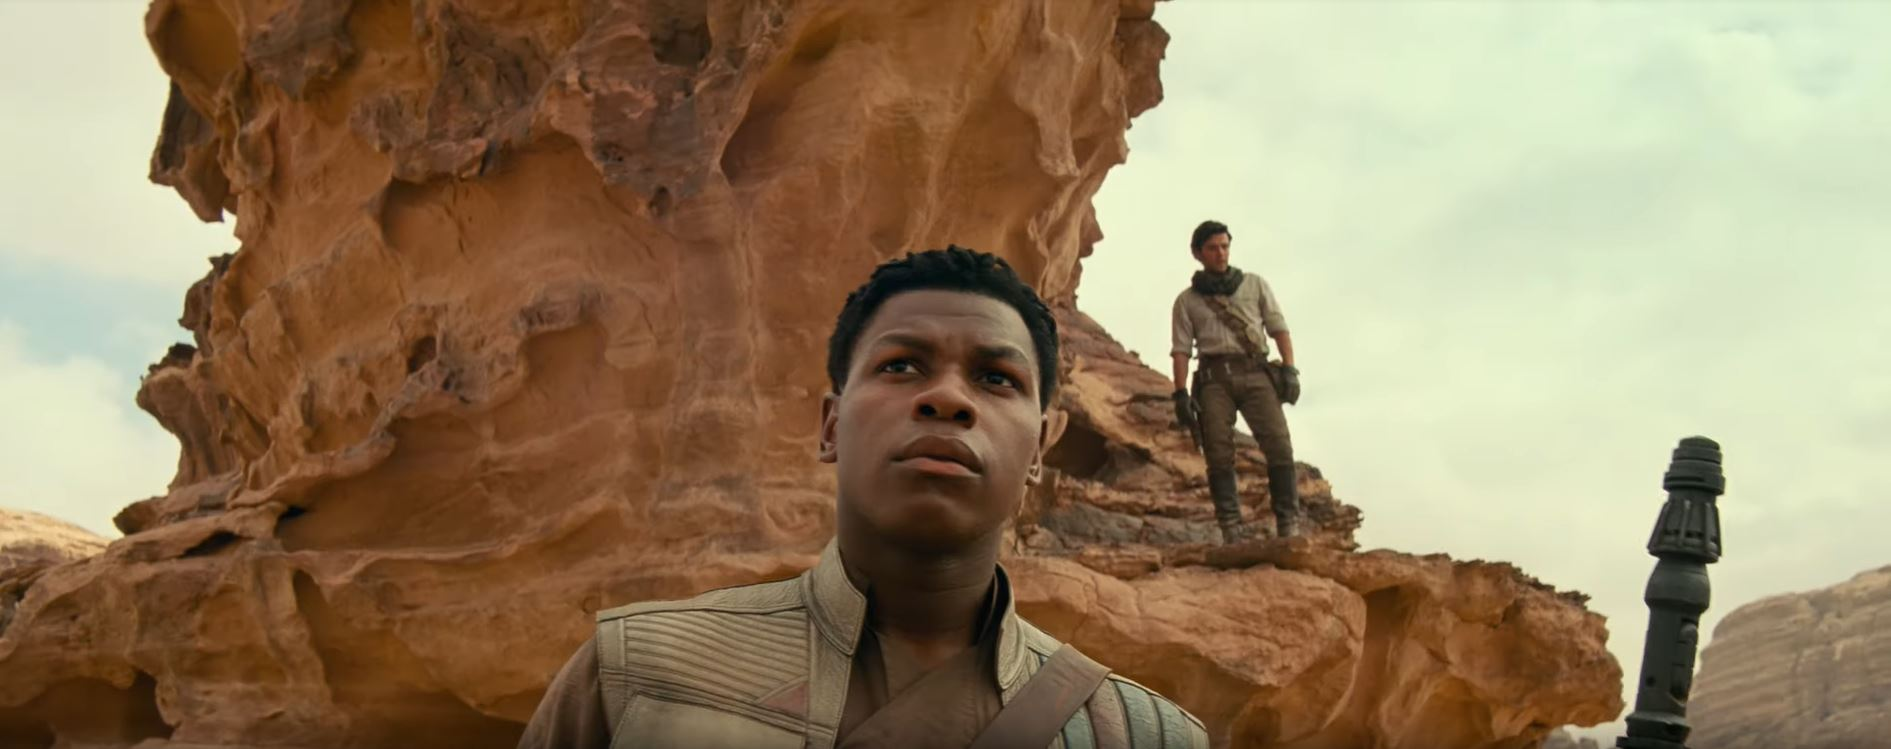 Star Wars The Rise of Skywalker Poe and Finn on desert planet